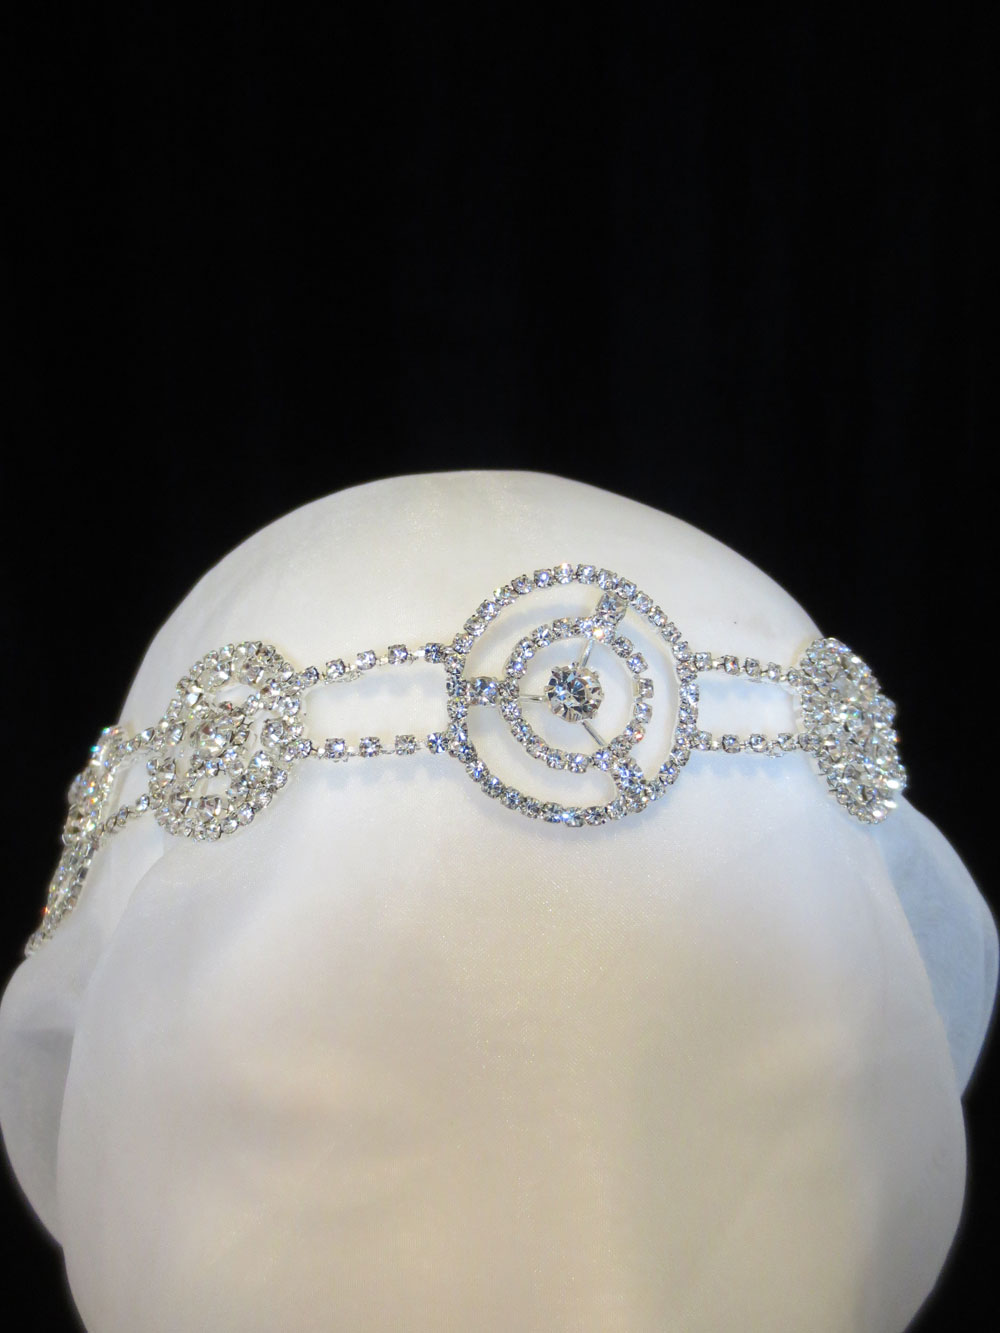 John-Zimmerman-Couture-Headpieces-and-Tiaras-Model-Boho-Gallery-Image-1